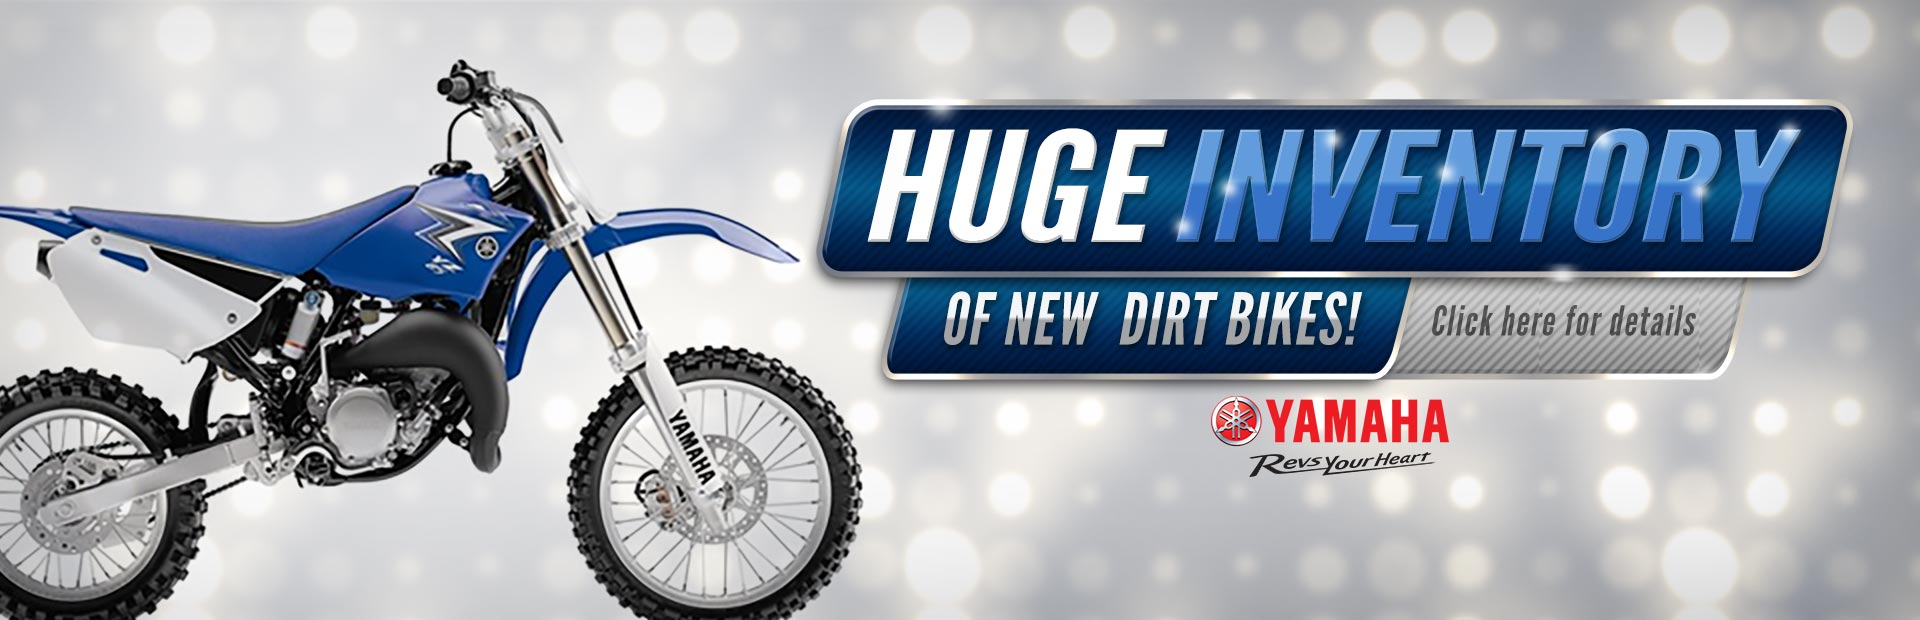 Click here to check out our huge inventory of Yamaha dirt bikes!